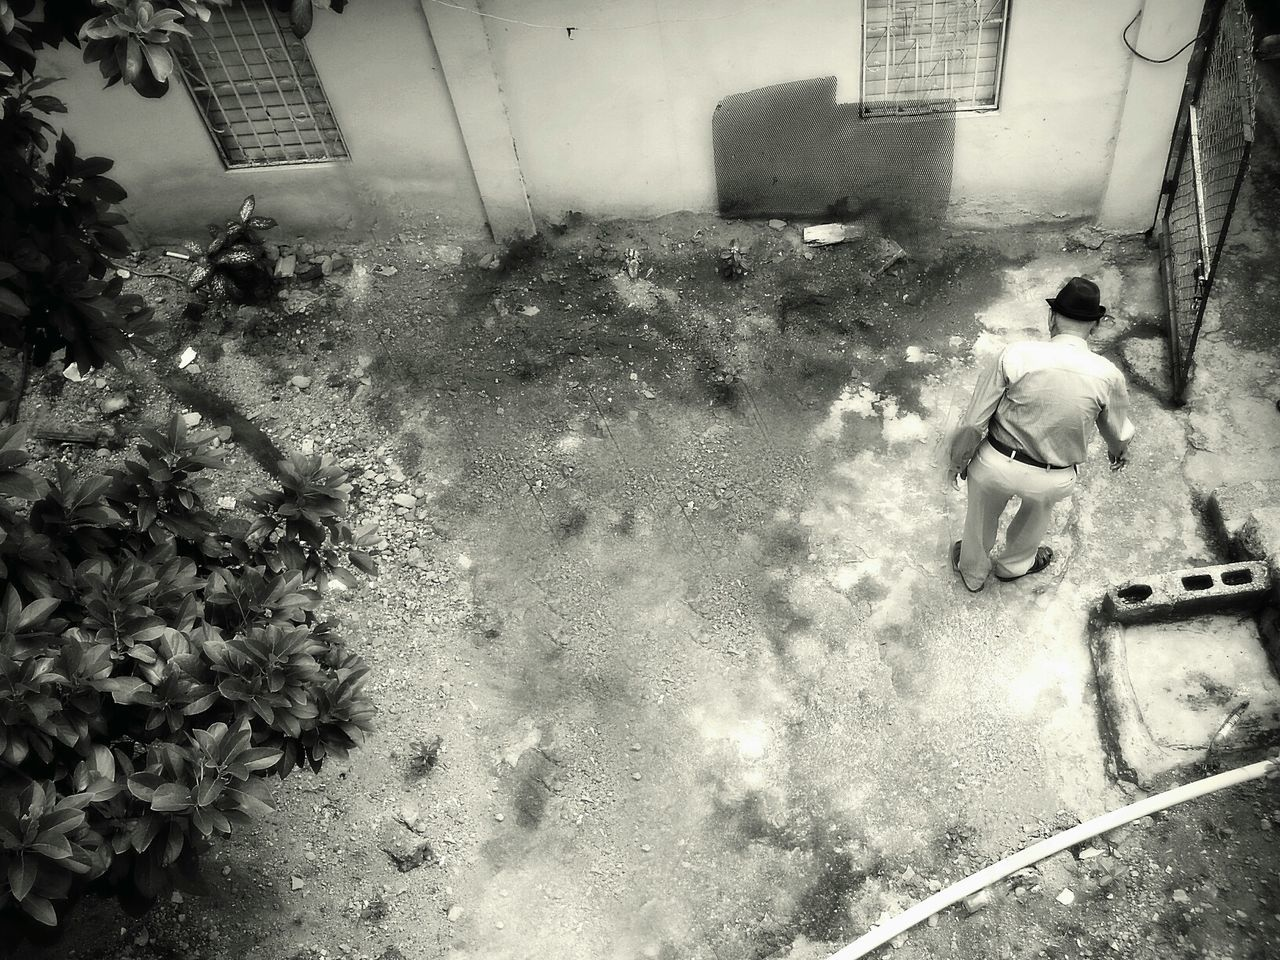 High Angle View Of Man Standing In Alley